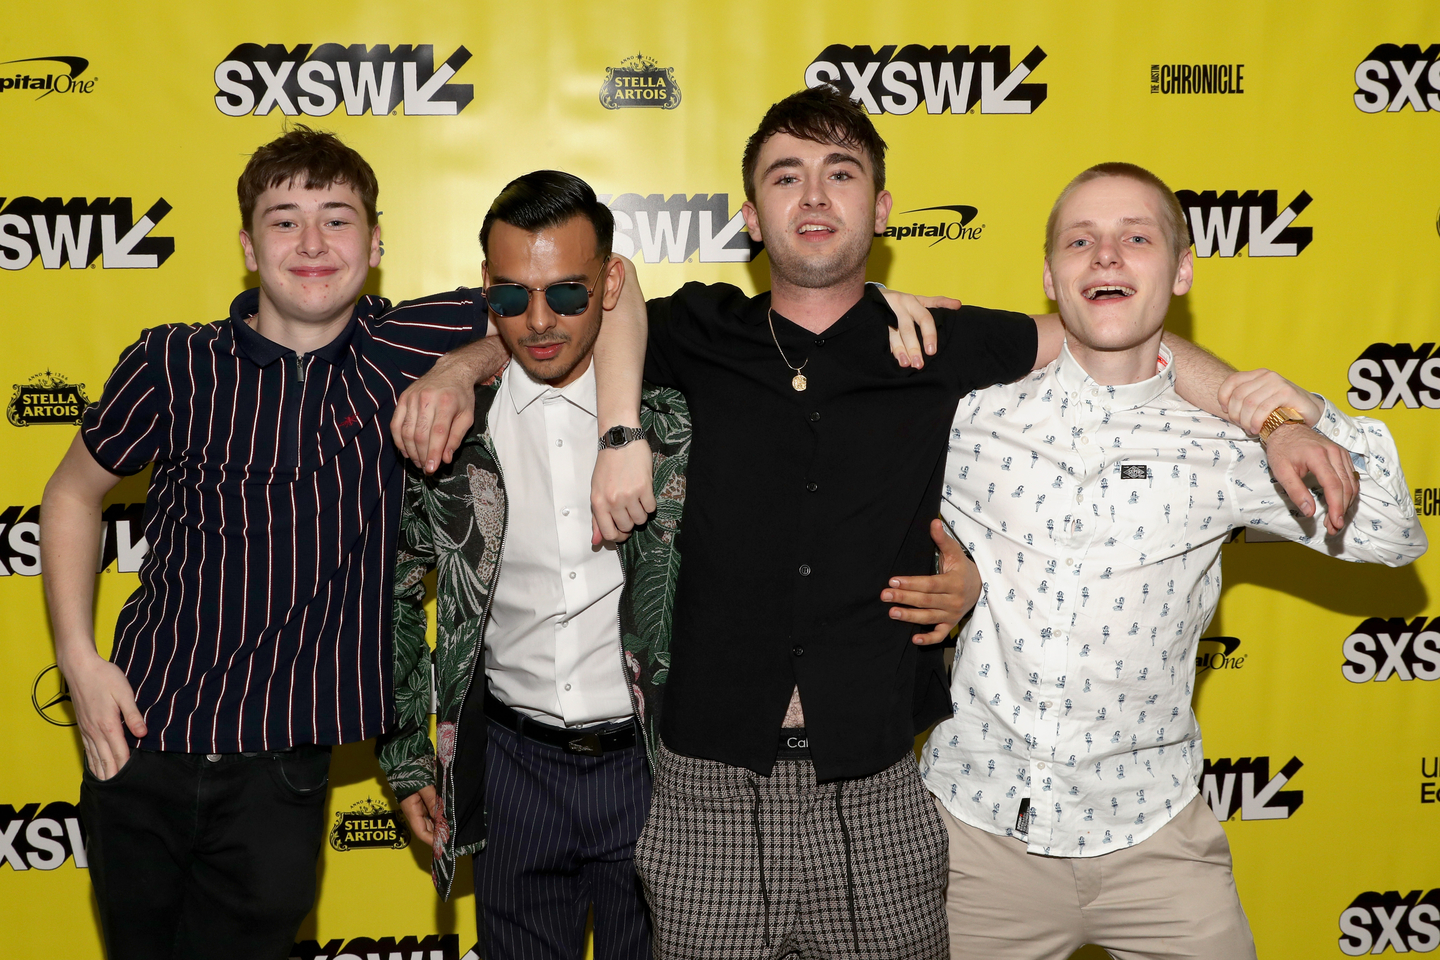 (L-R) Samuel Bottomley, Viraj Juneja, Rian Gordon, and Lewis Gribben attend the Boyz In The Wood world premiere. Photo by Hutton Supancic/Getty Images for SXSW